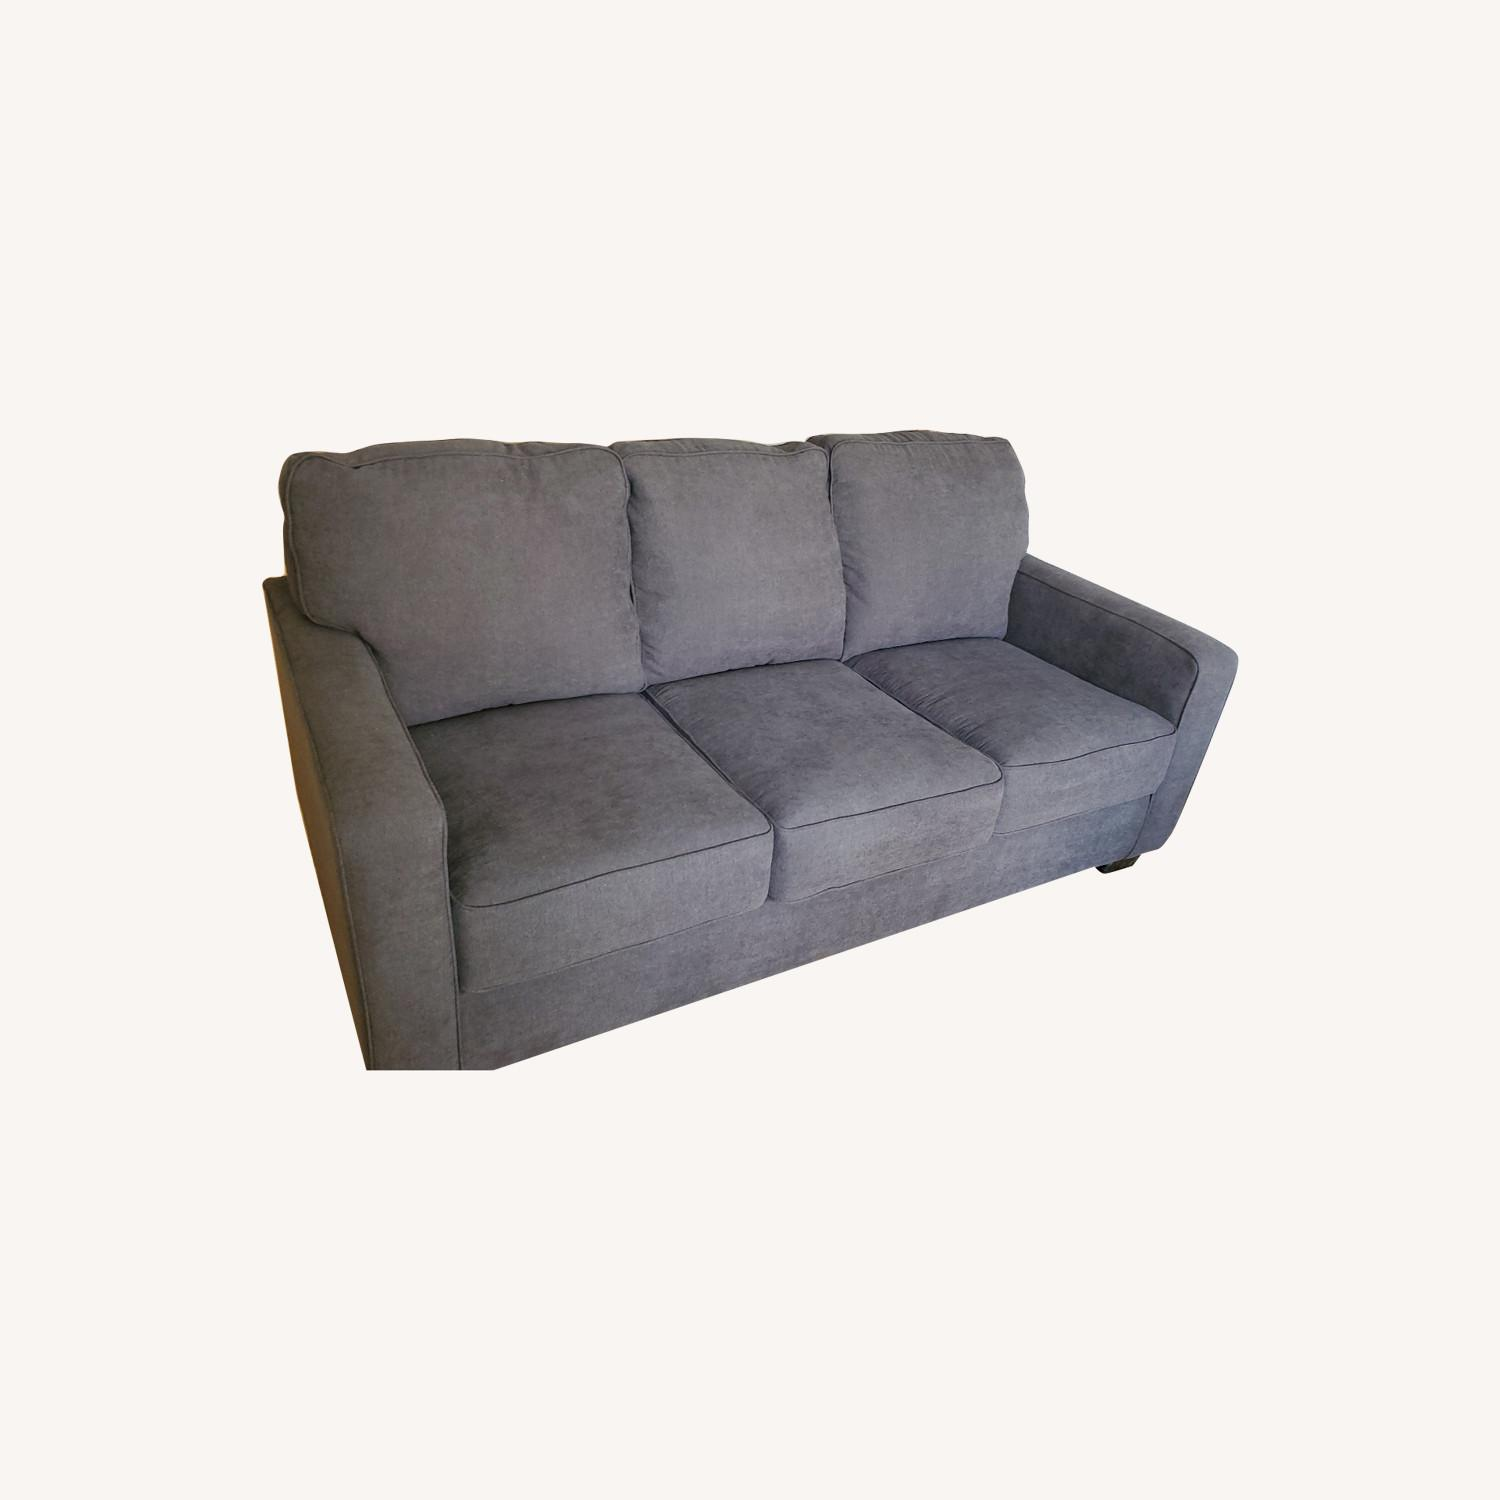 Ashley Furniture ZEB Sleeper Sofa - image-4